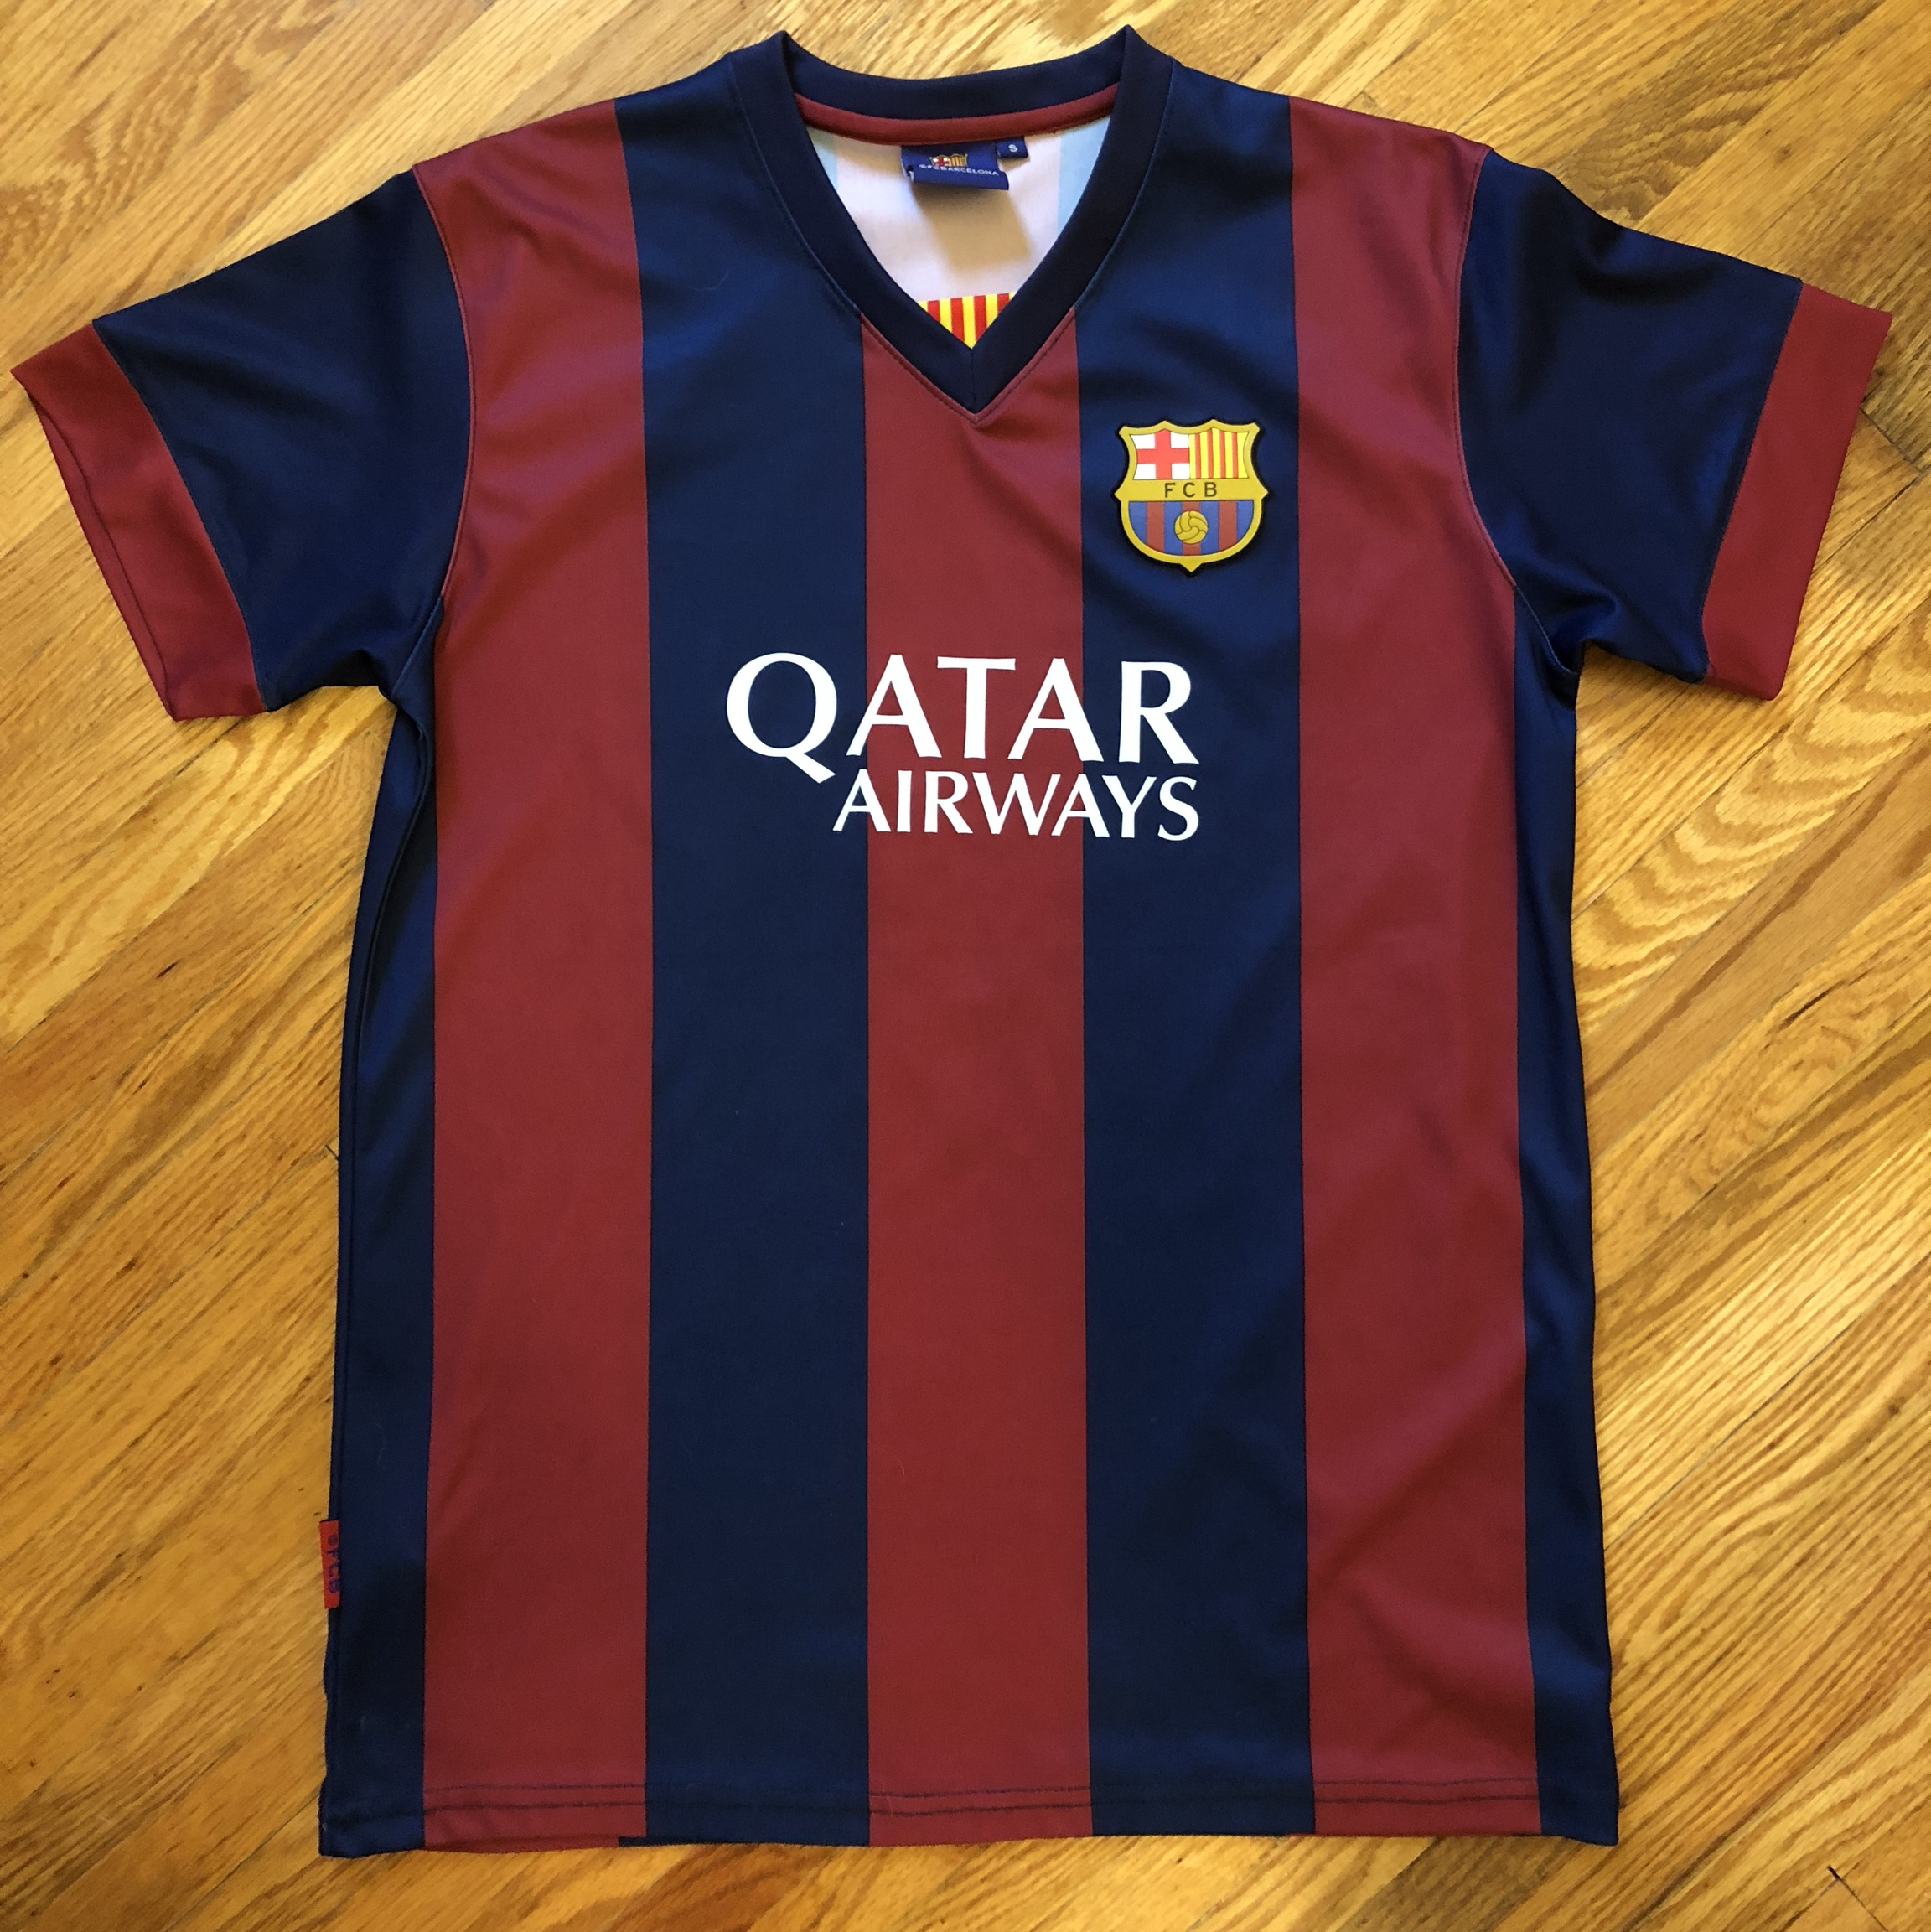 Messi Fc Barcelona Qatar Airways Jersey Only Worn Depop